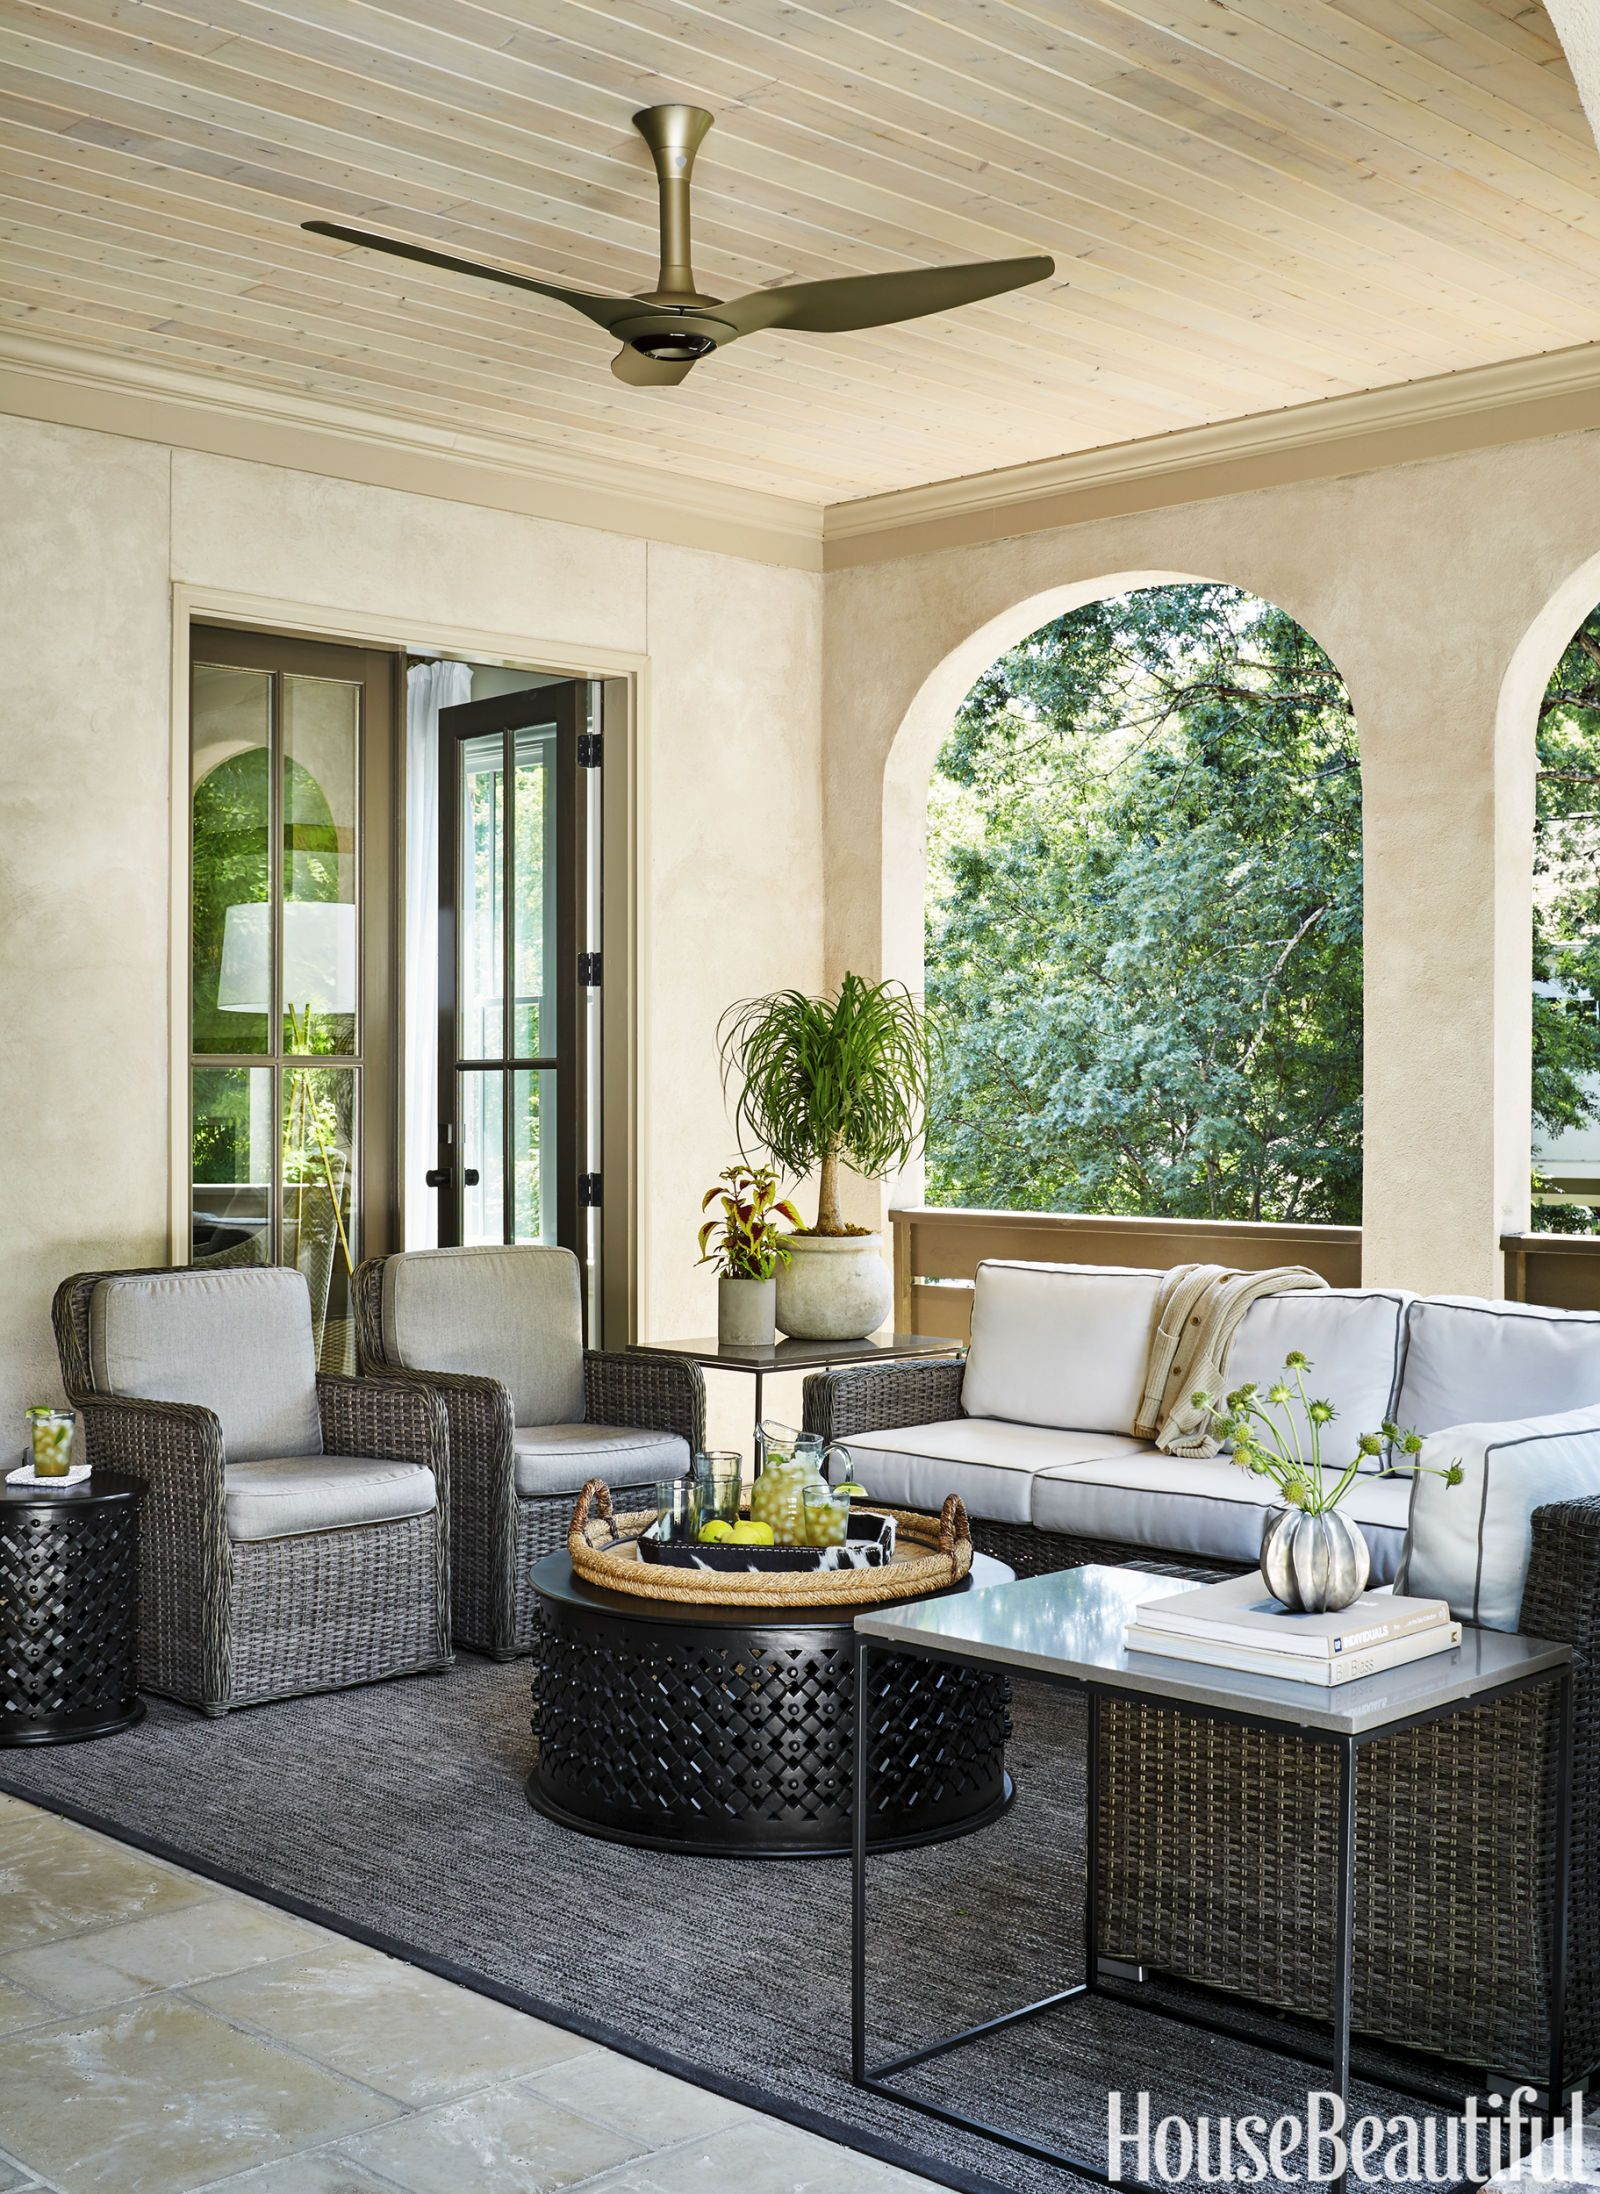 Florida Living Room Design Ideas: 30 Patio Ideas To Make Your Backyard Look Incredible